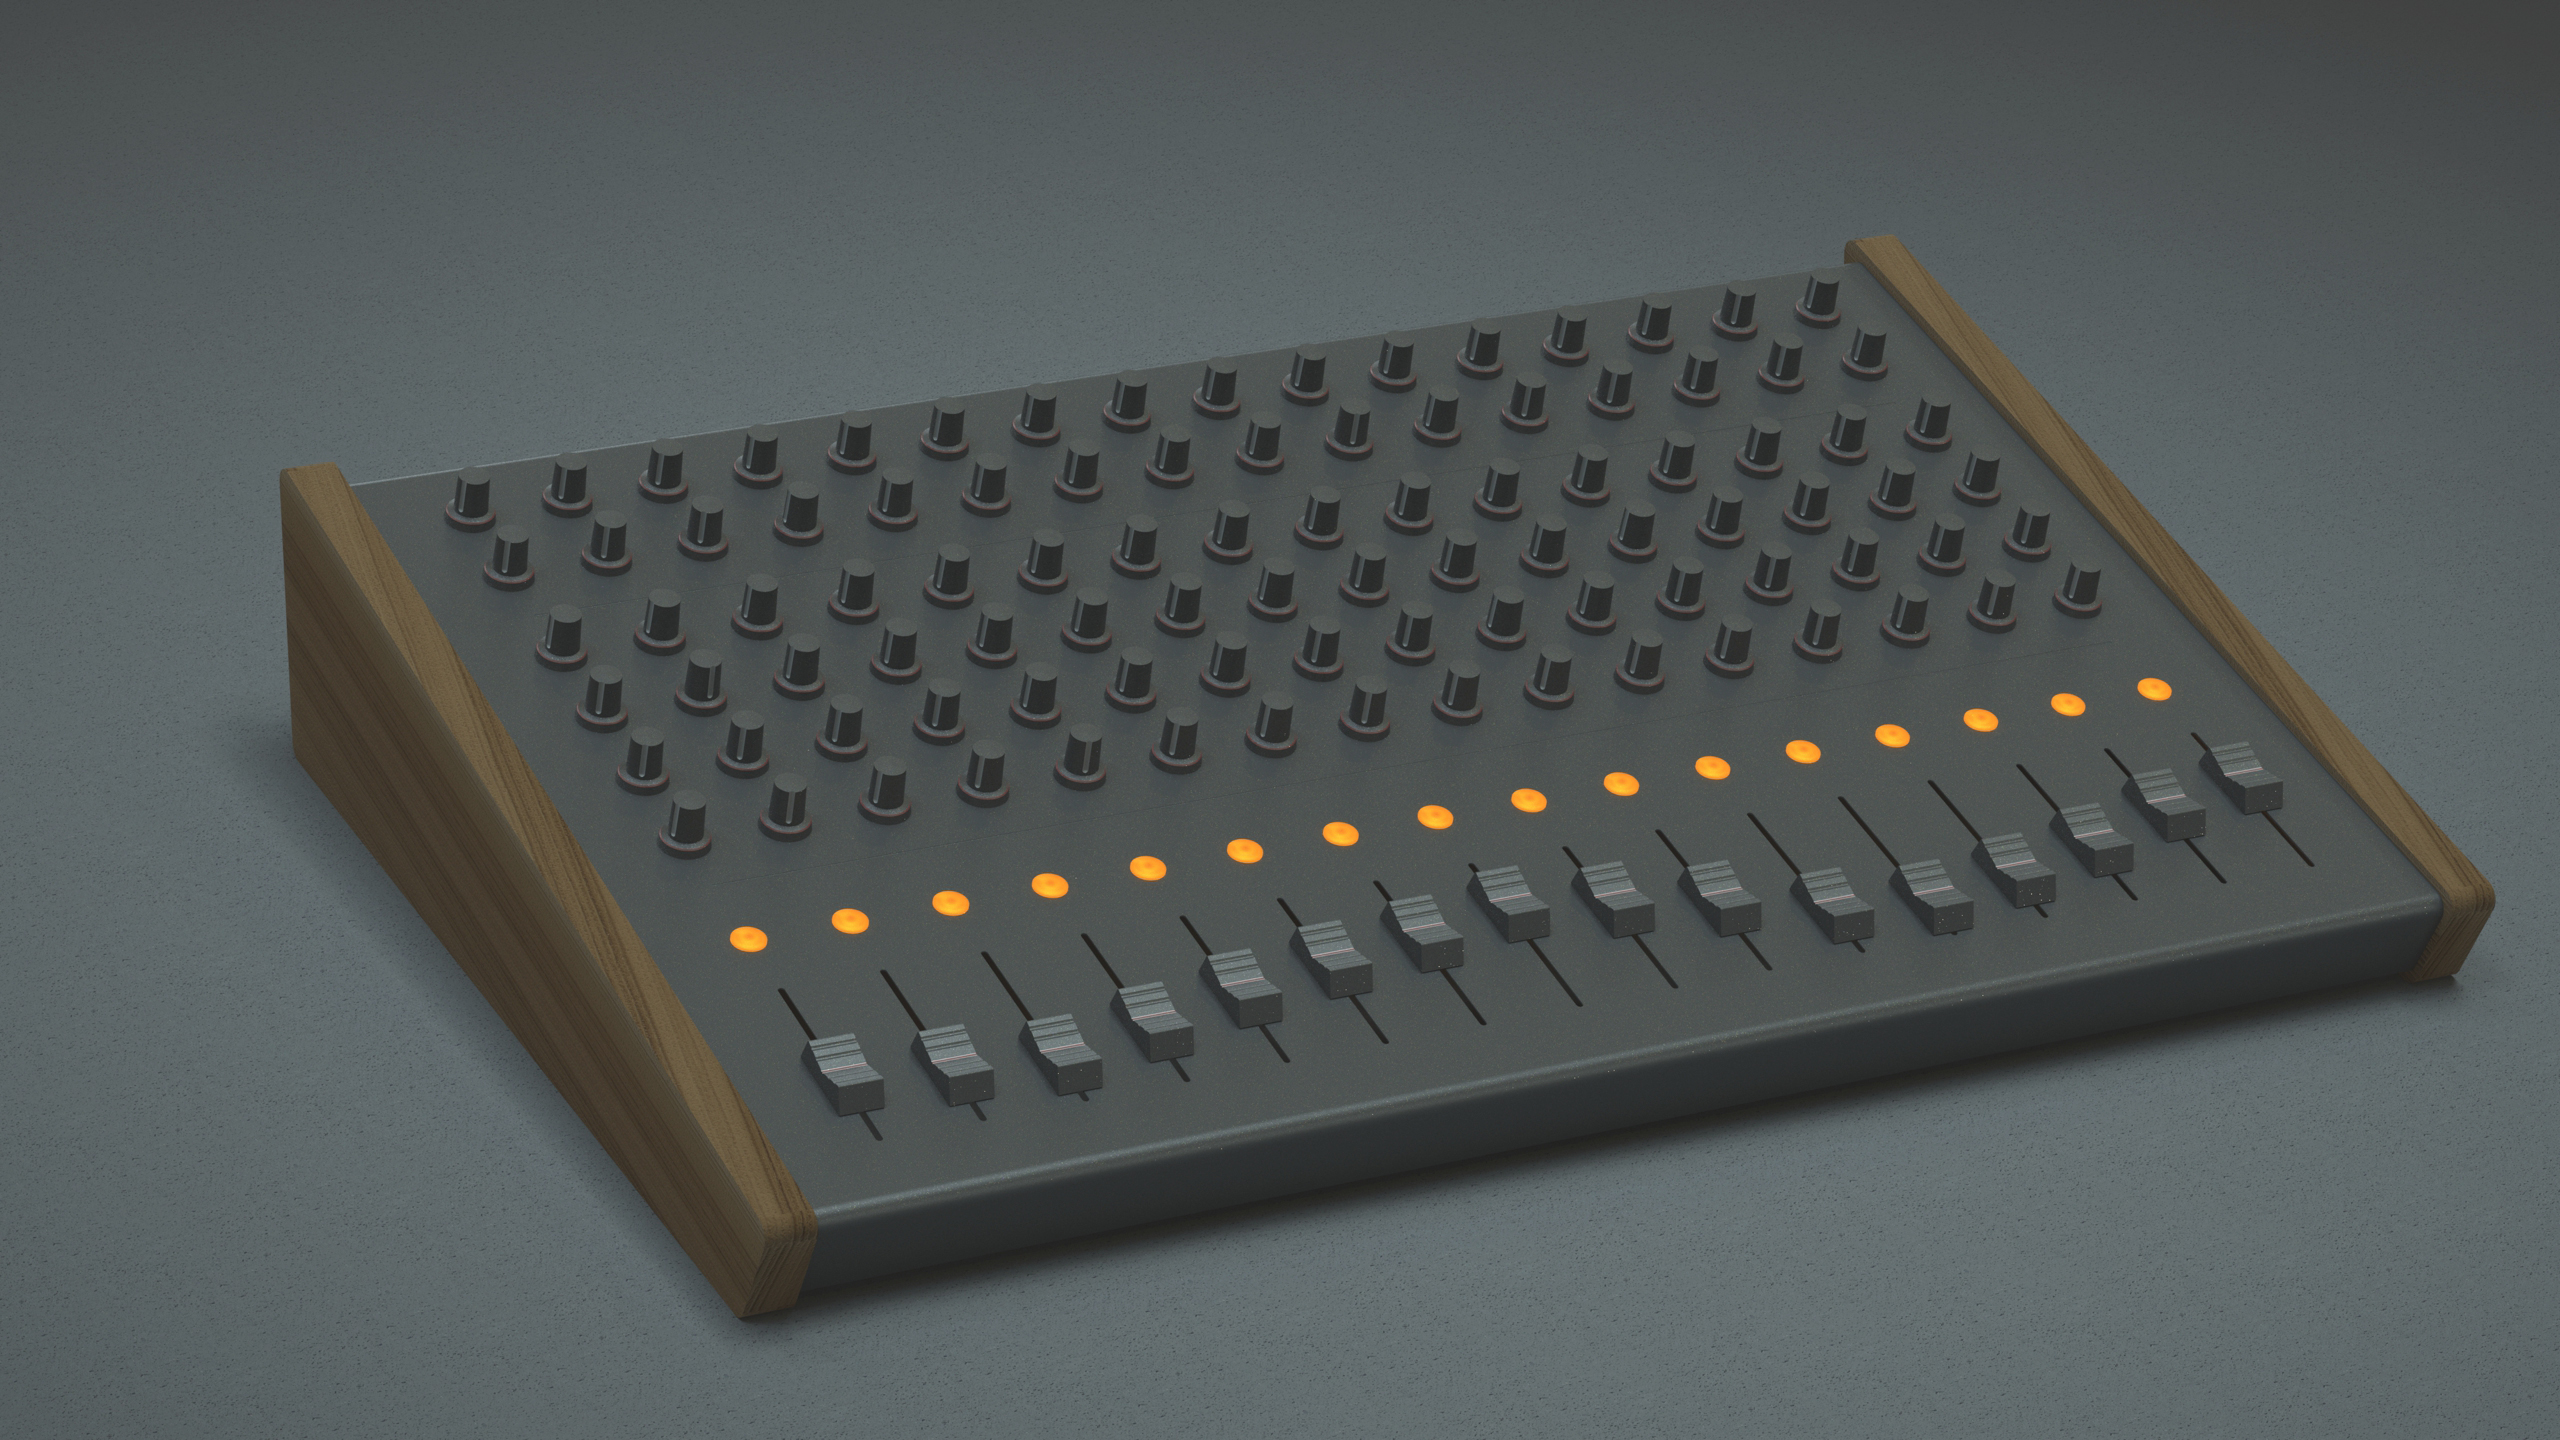 Midi controller made in Solidworks, by Sebastian Galo